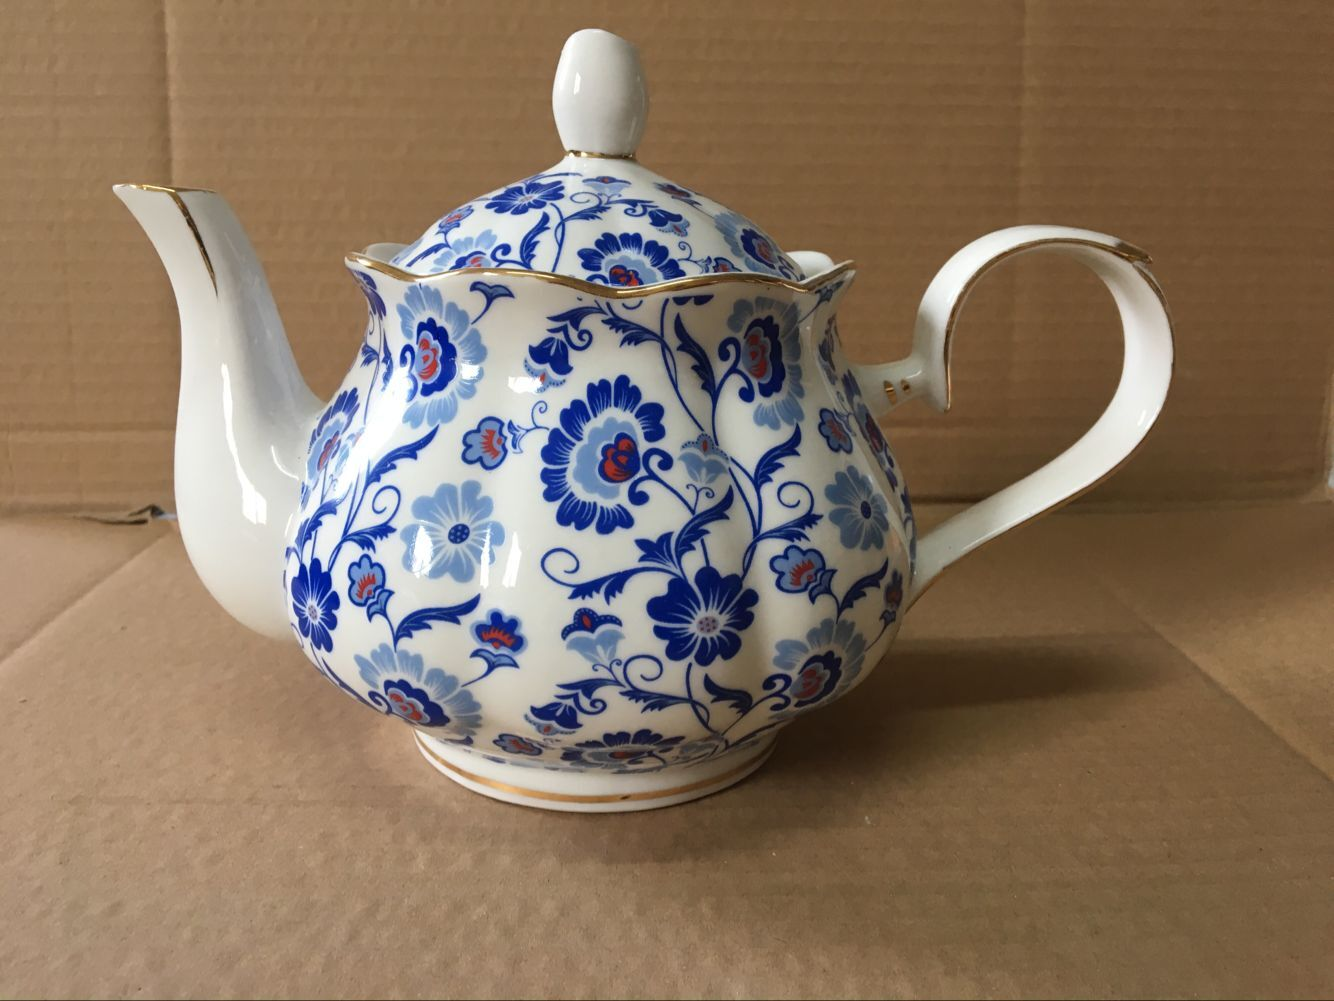 Sunshine Blue Sprays 4 cup teapot